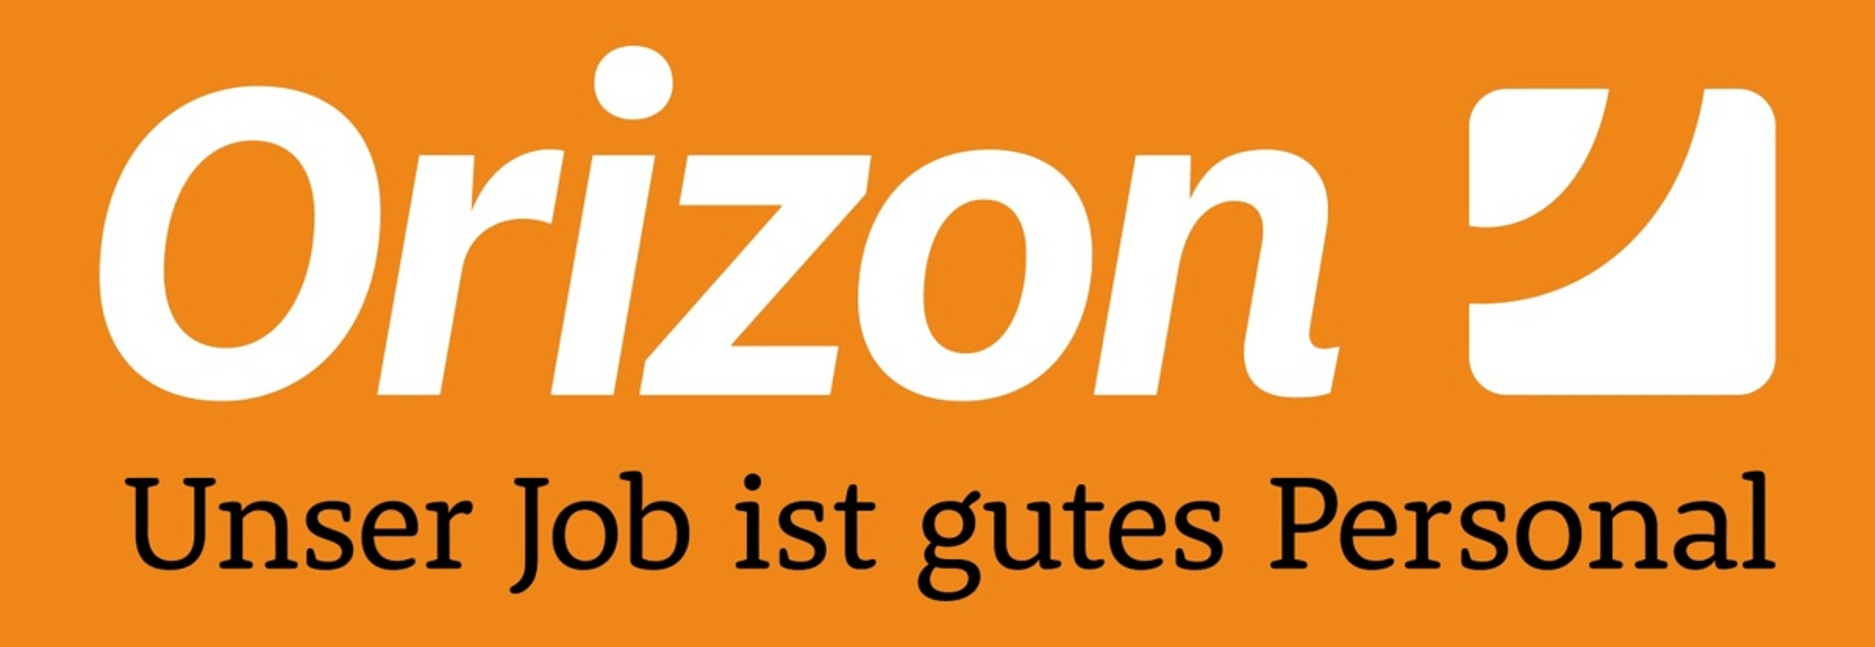 Logo Orizon is using IRISXtract as a Digital Mailroom solution for HR documents.